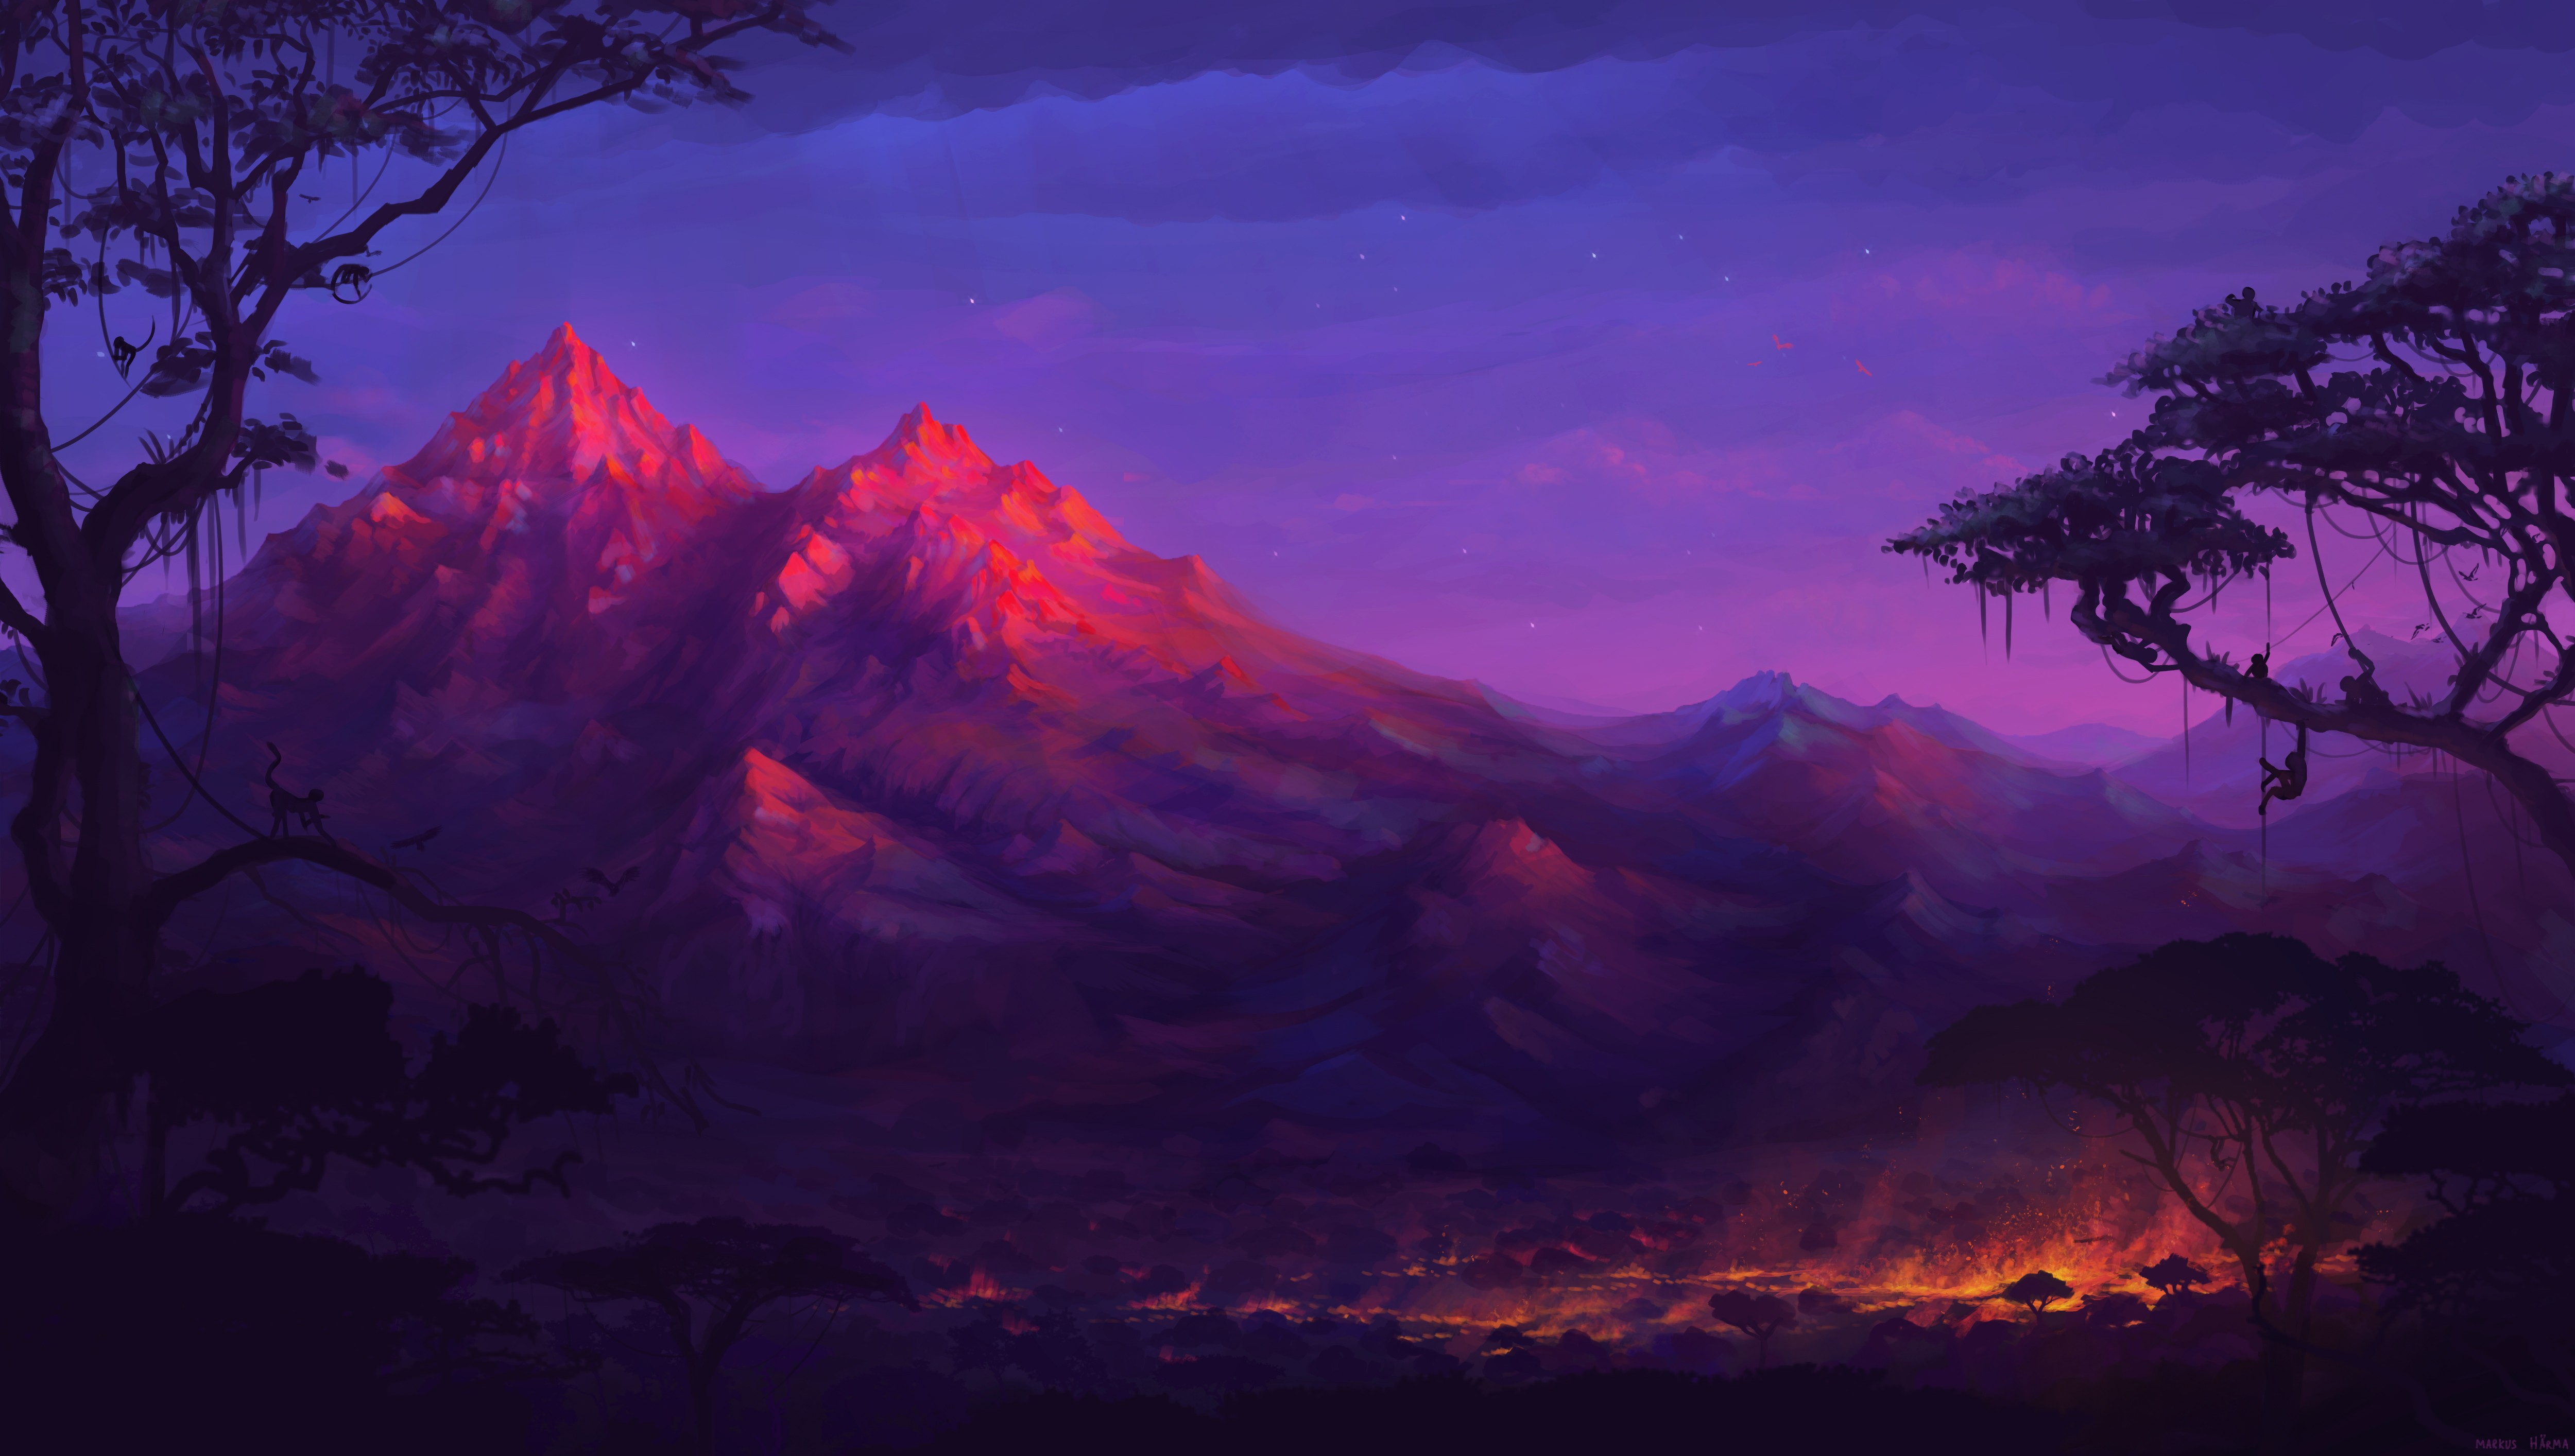 Rise of Cults 2 Bot (Beta abierta) - Página 5 Forest-mountains-colorful-night-trees-fantasy-artwork-5k-bq